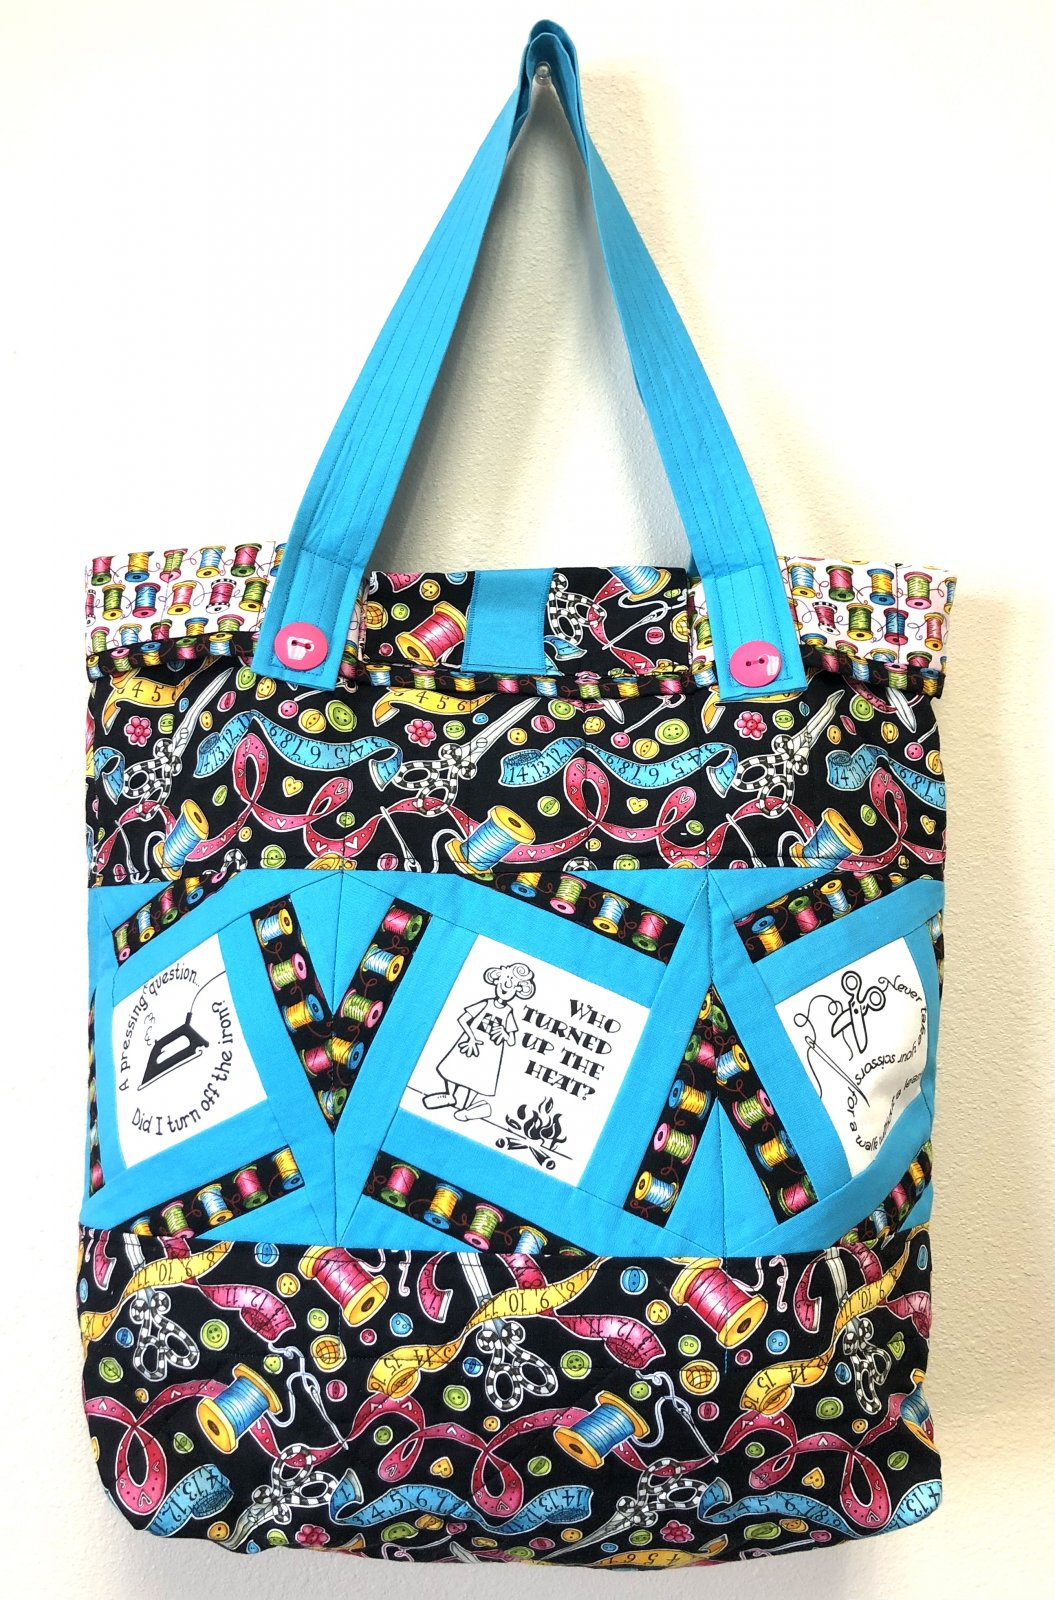 Bags with Hand Tote Bag